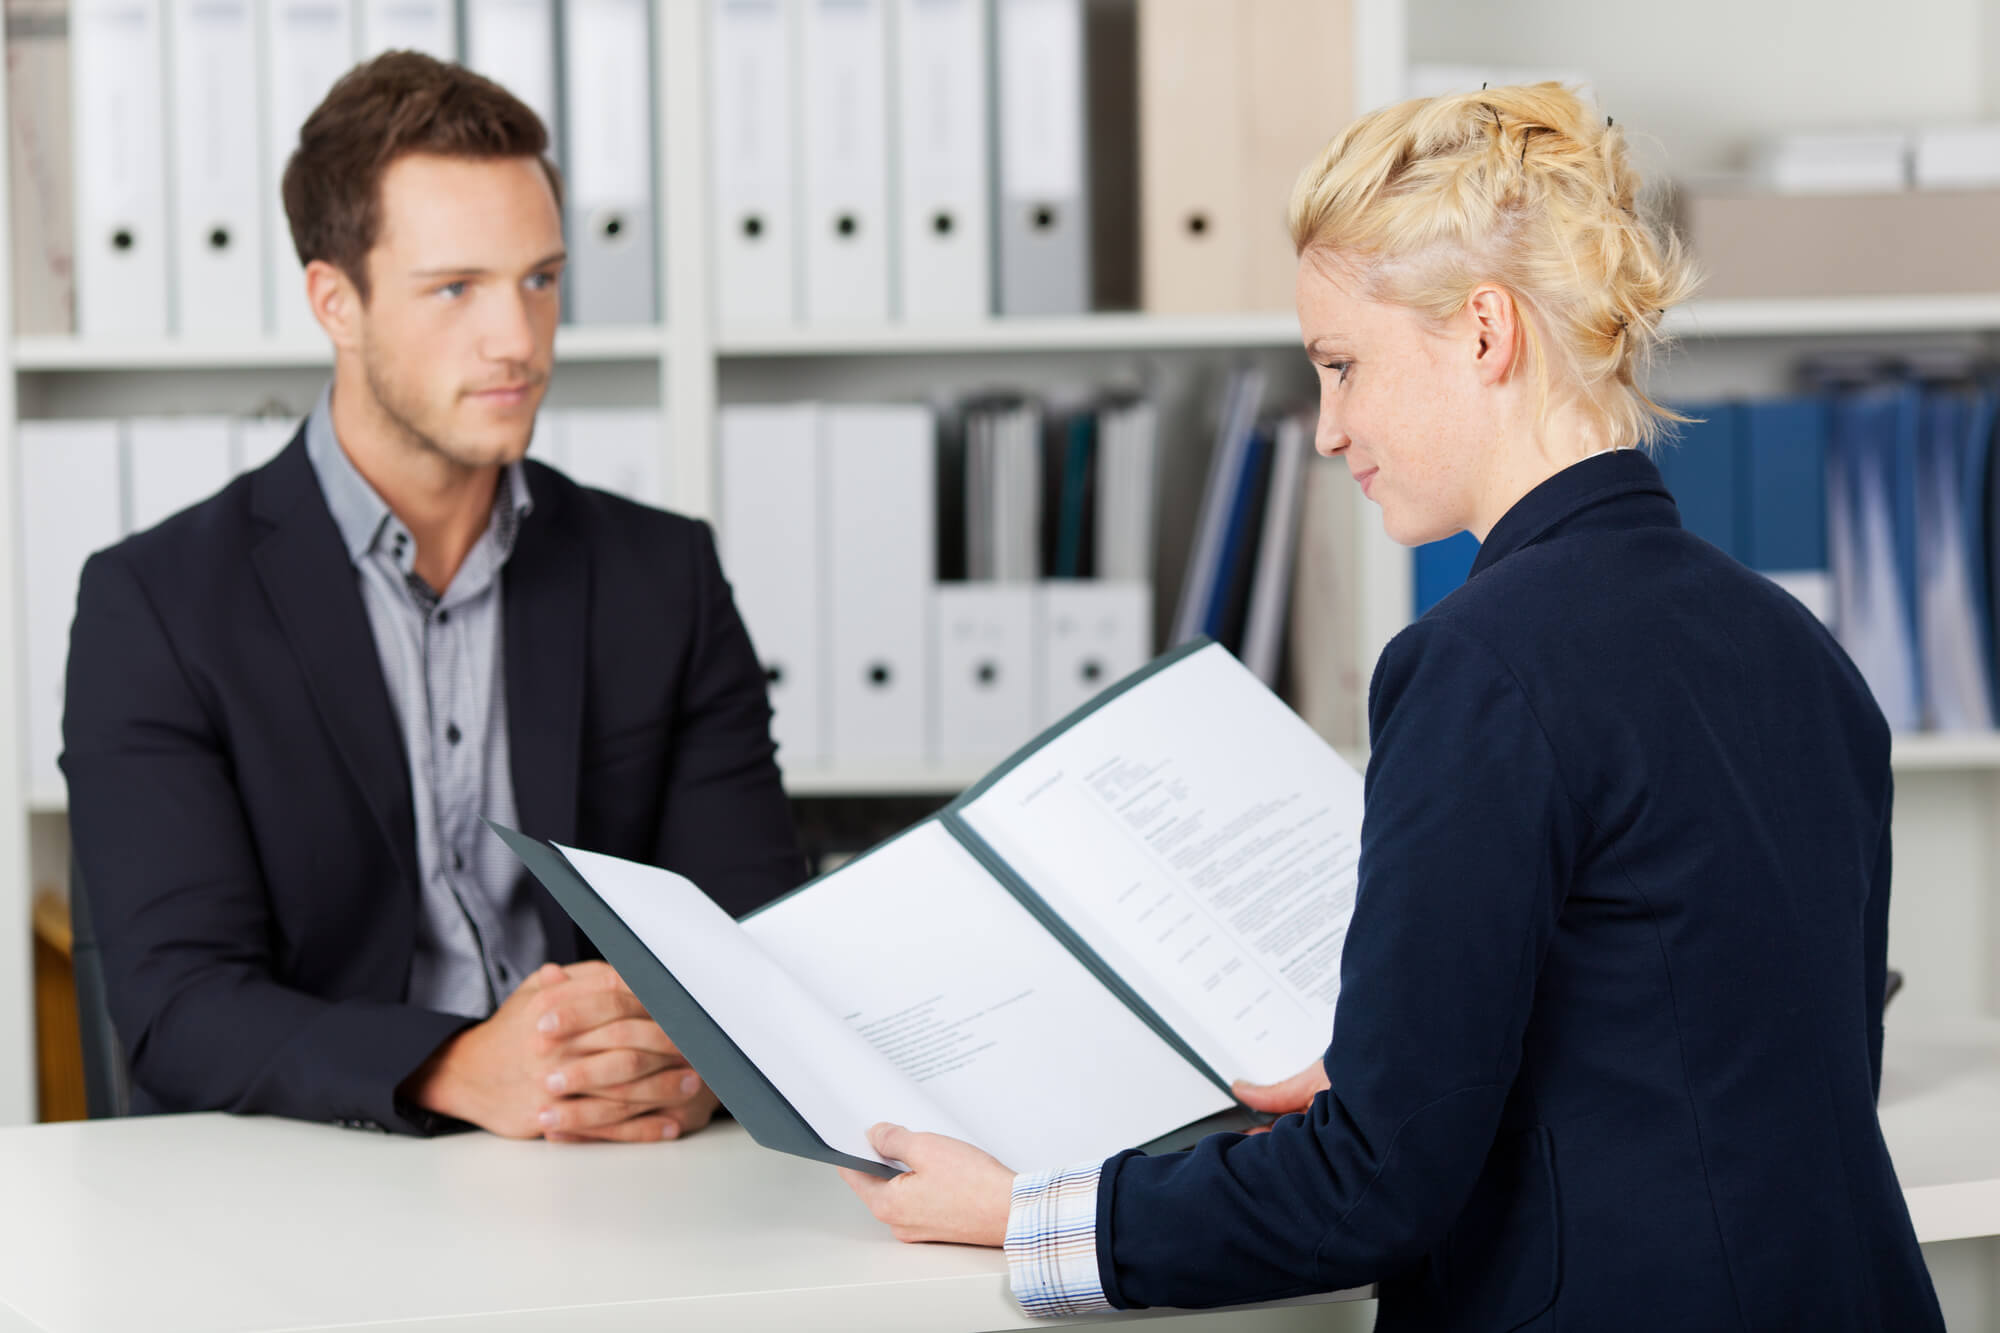 woman interviewing a man orthodontics positions hiring